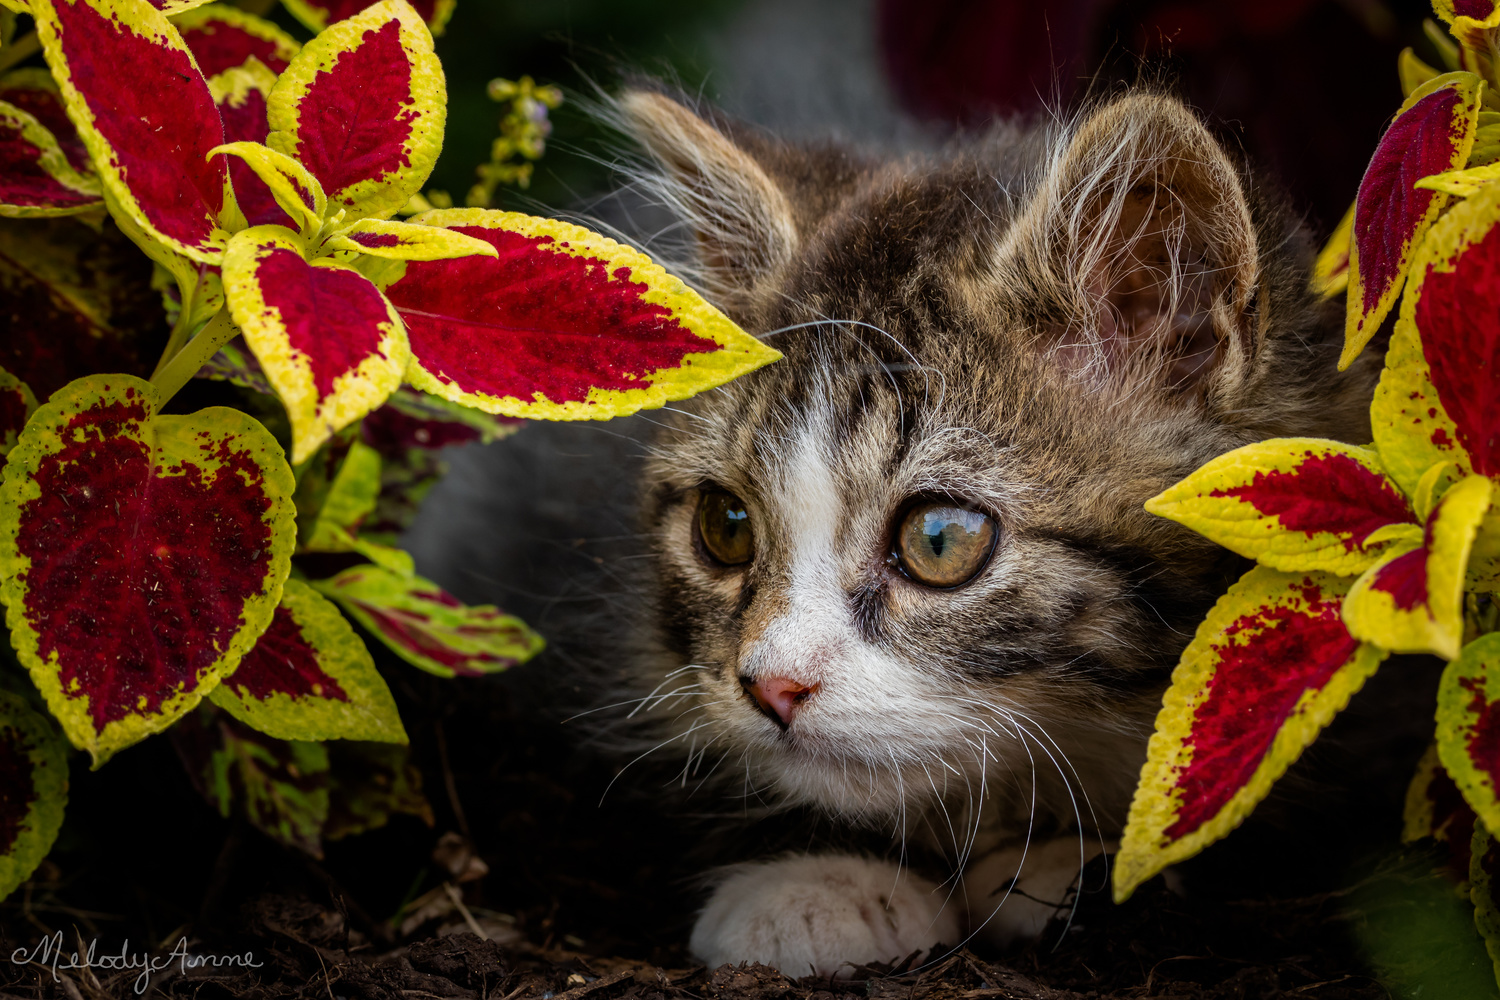 Kitten in the Flowerbed by Melody Mellinger